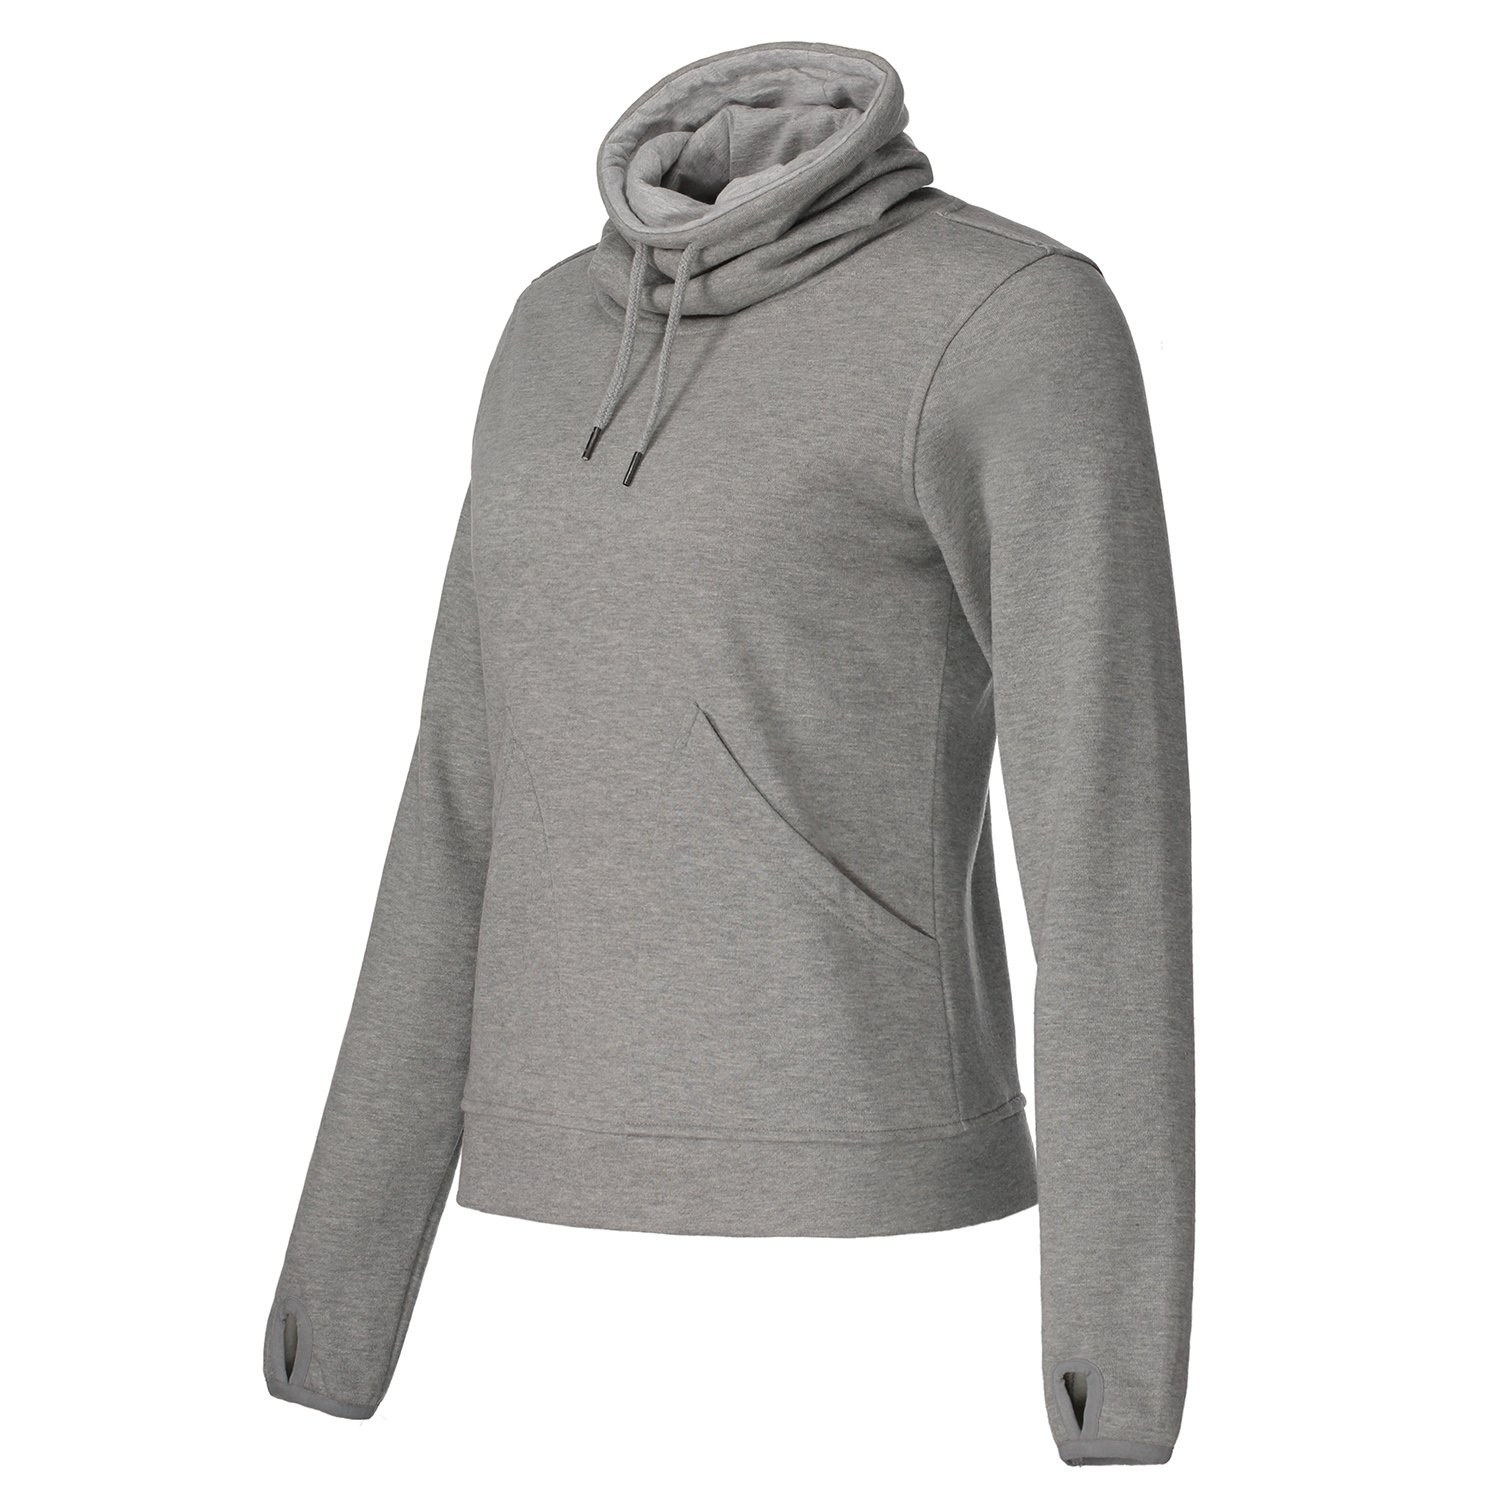 Helzkor Women's Long Sleeve Fleece Lined Pullover Cowl Neck Casual Sweatshirt With Thumbholes and Pockets - Gray, M